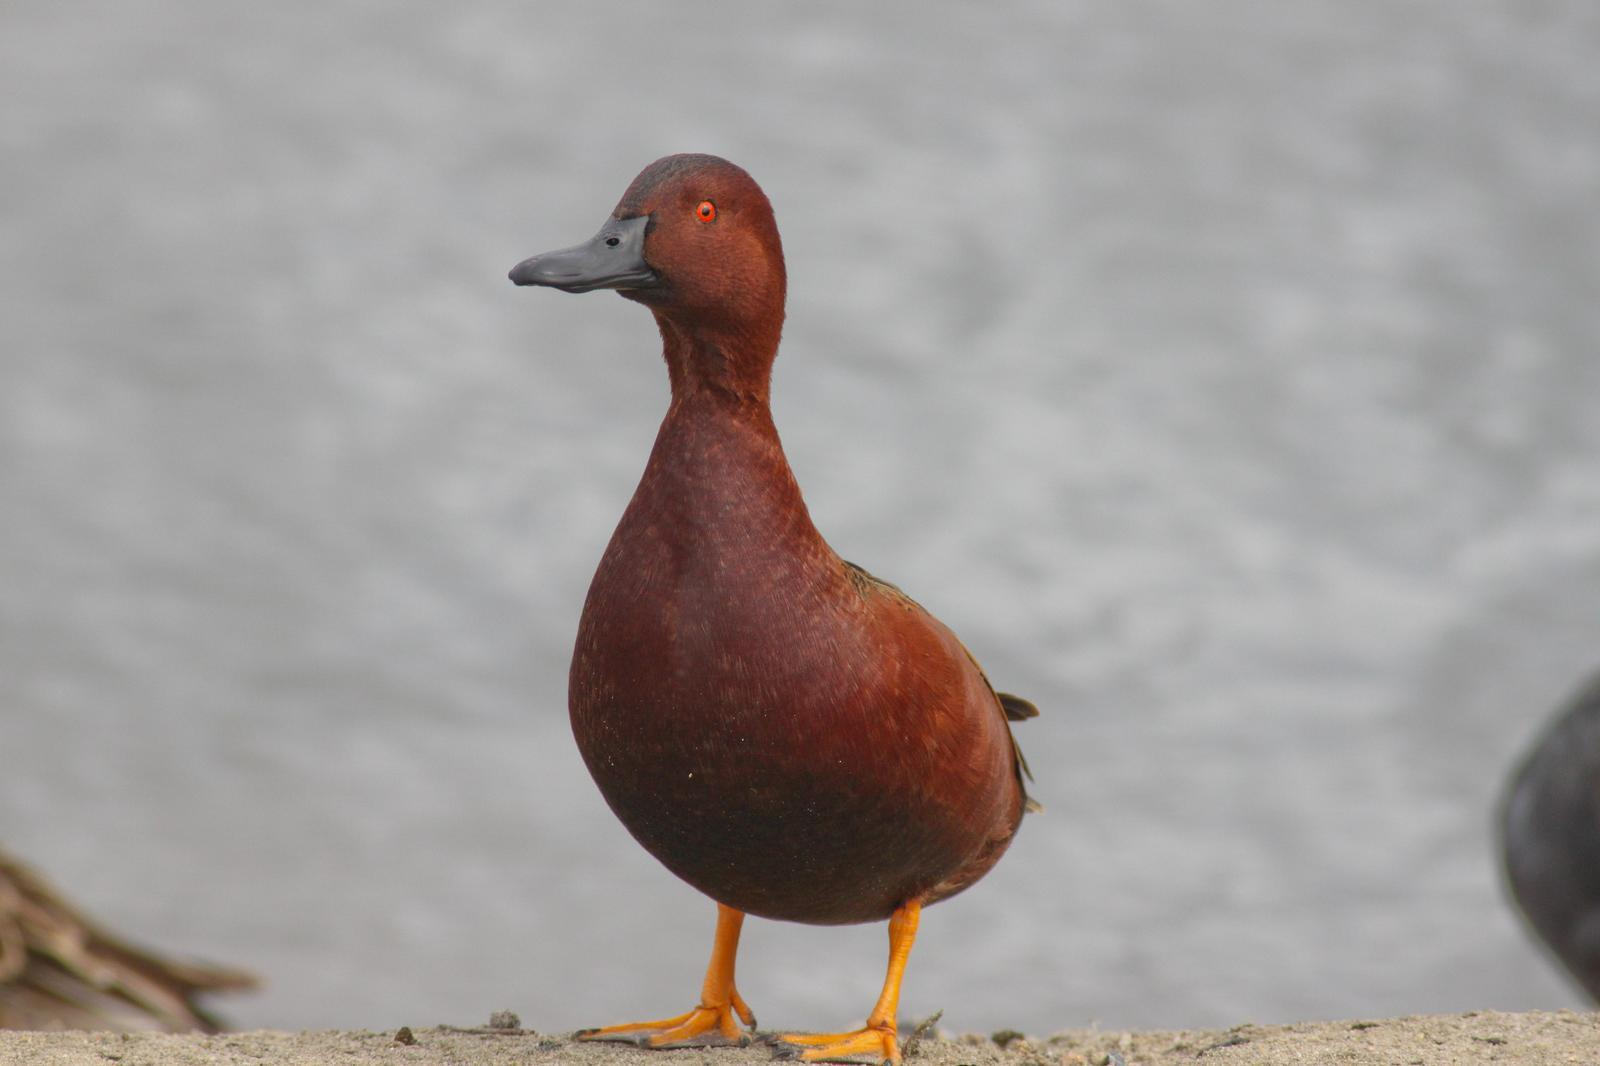 Cinnamon Teal Photo by Tom Ford-Hutchinson